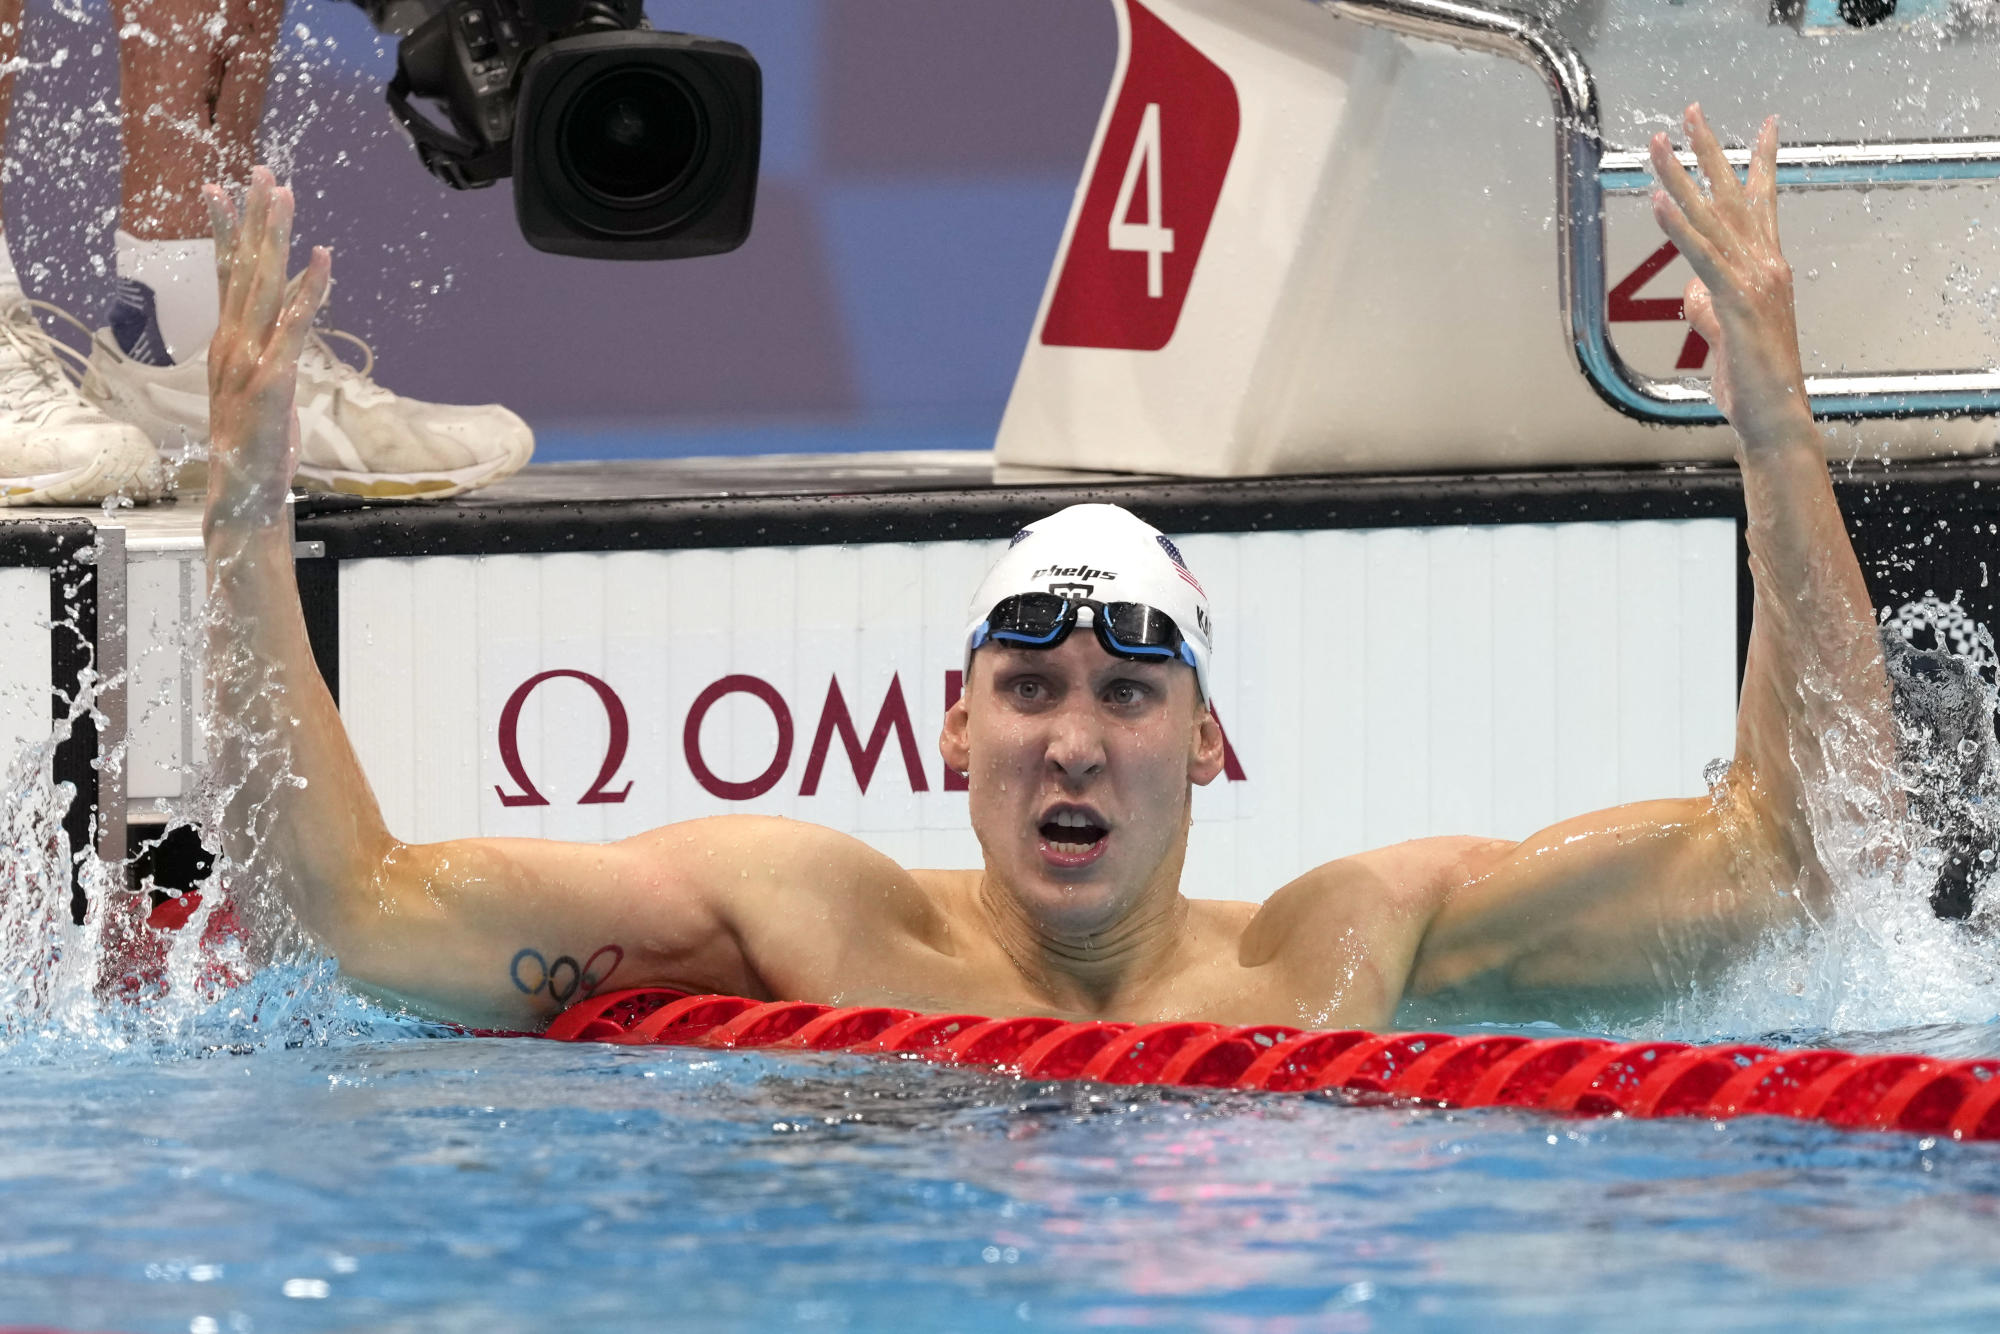 US starts off strong with 3 swim medals, including 1st gold